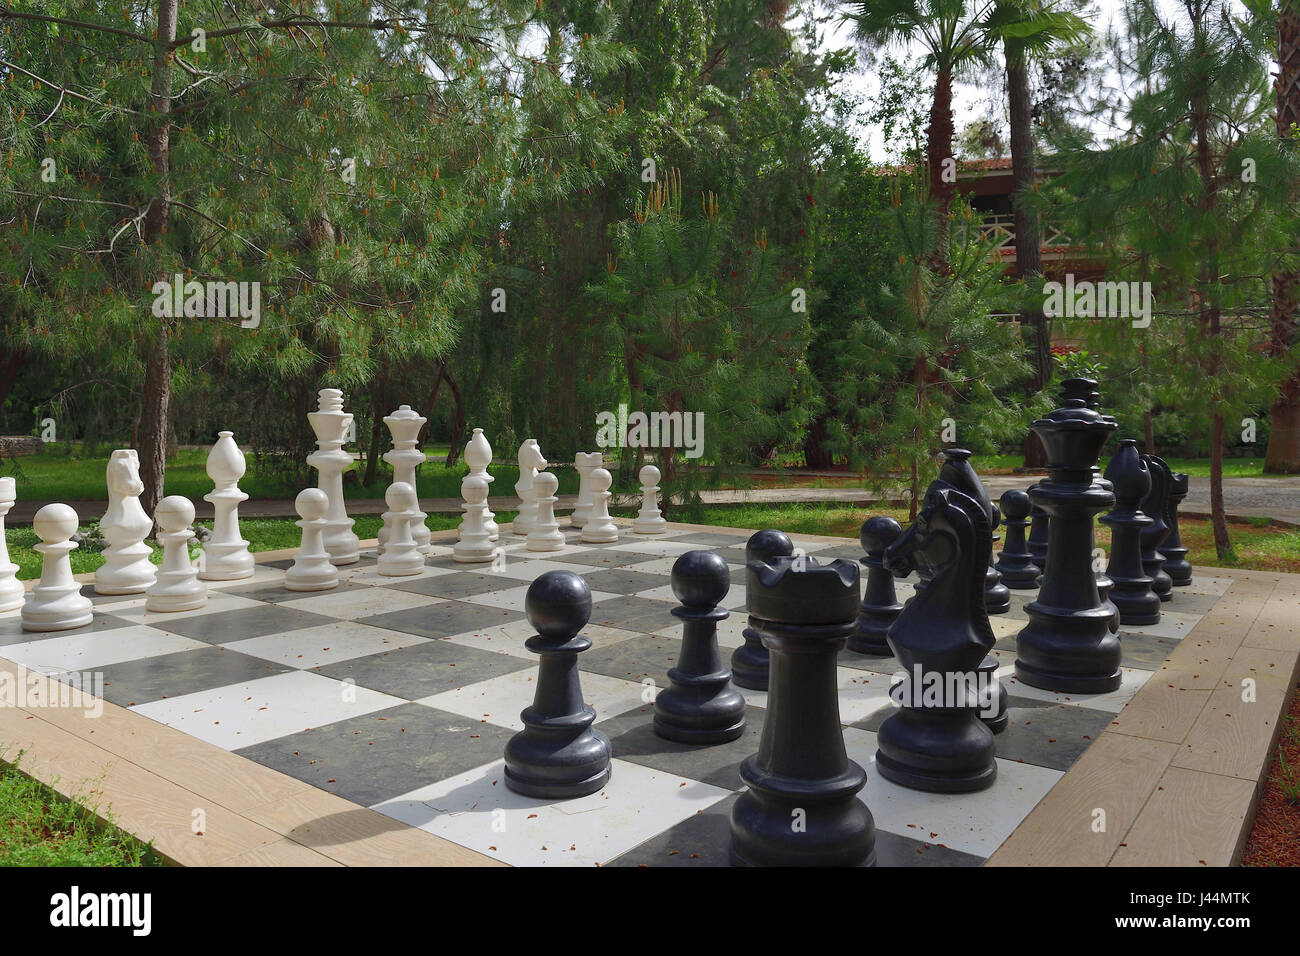 Large chess set outdoors on lawn - Stock Image